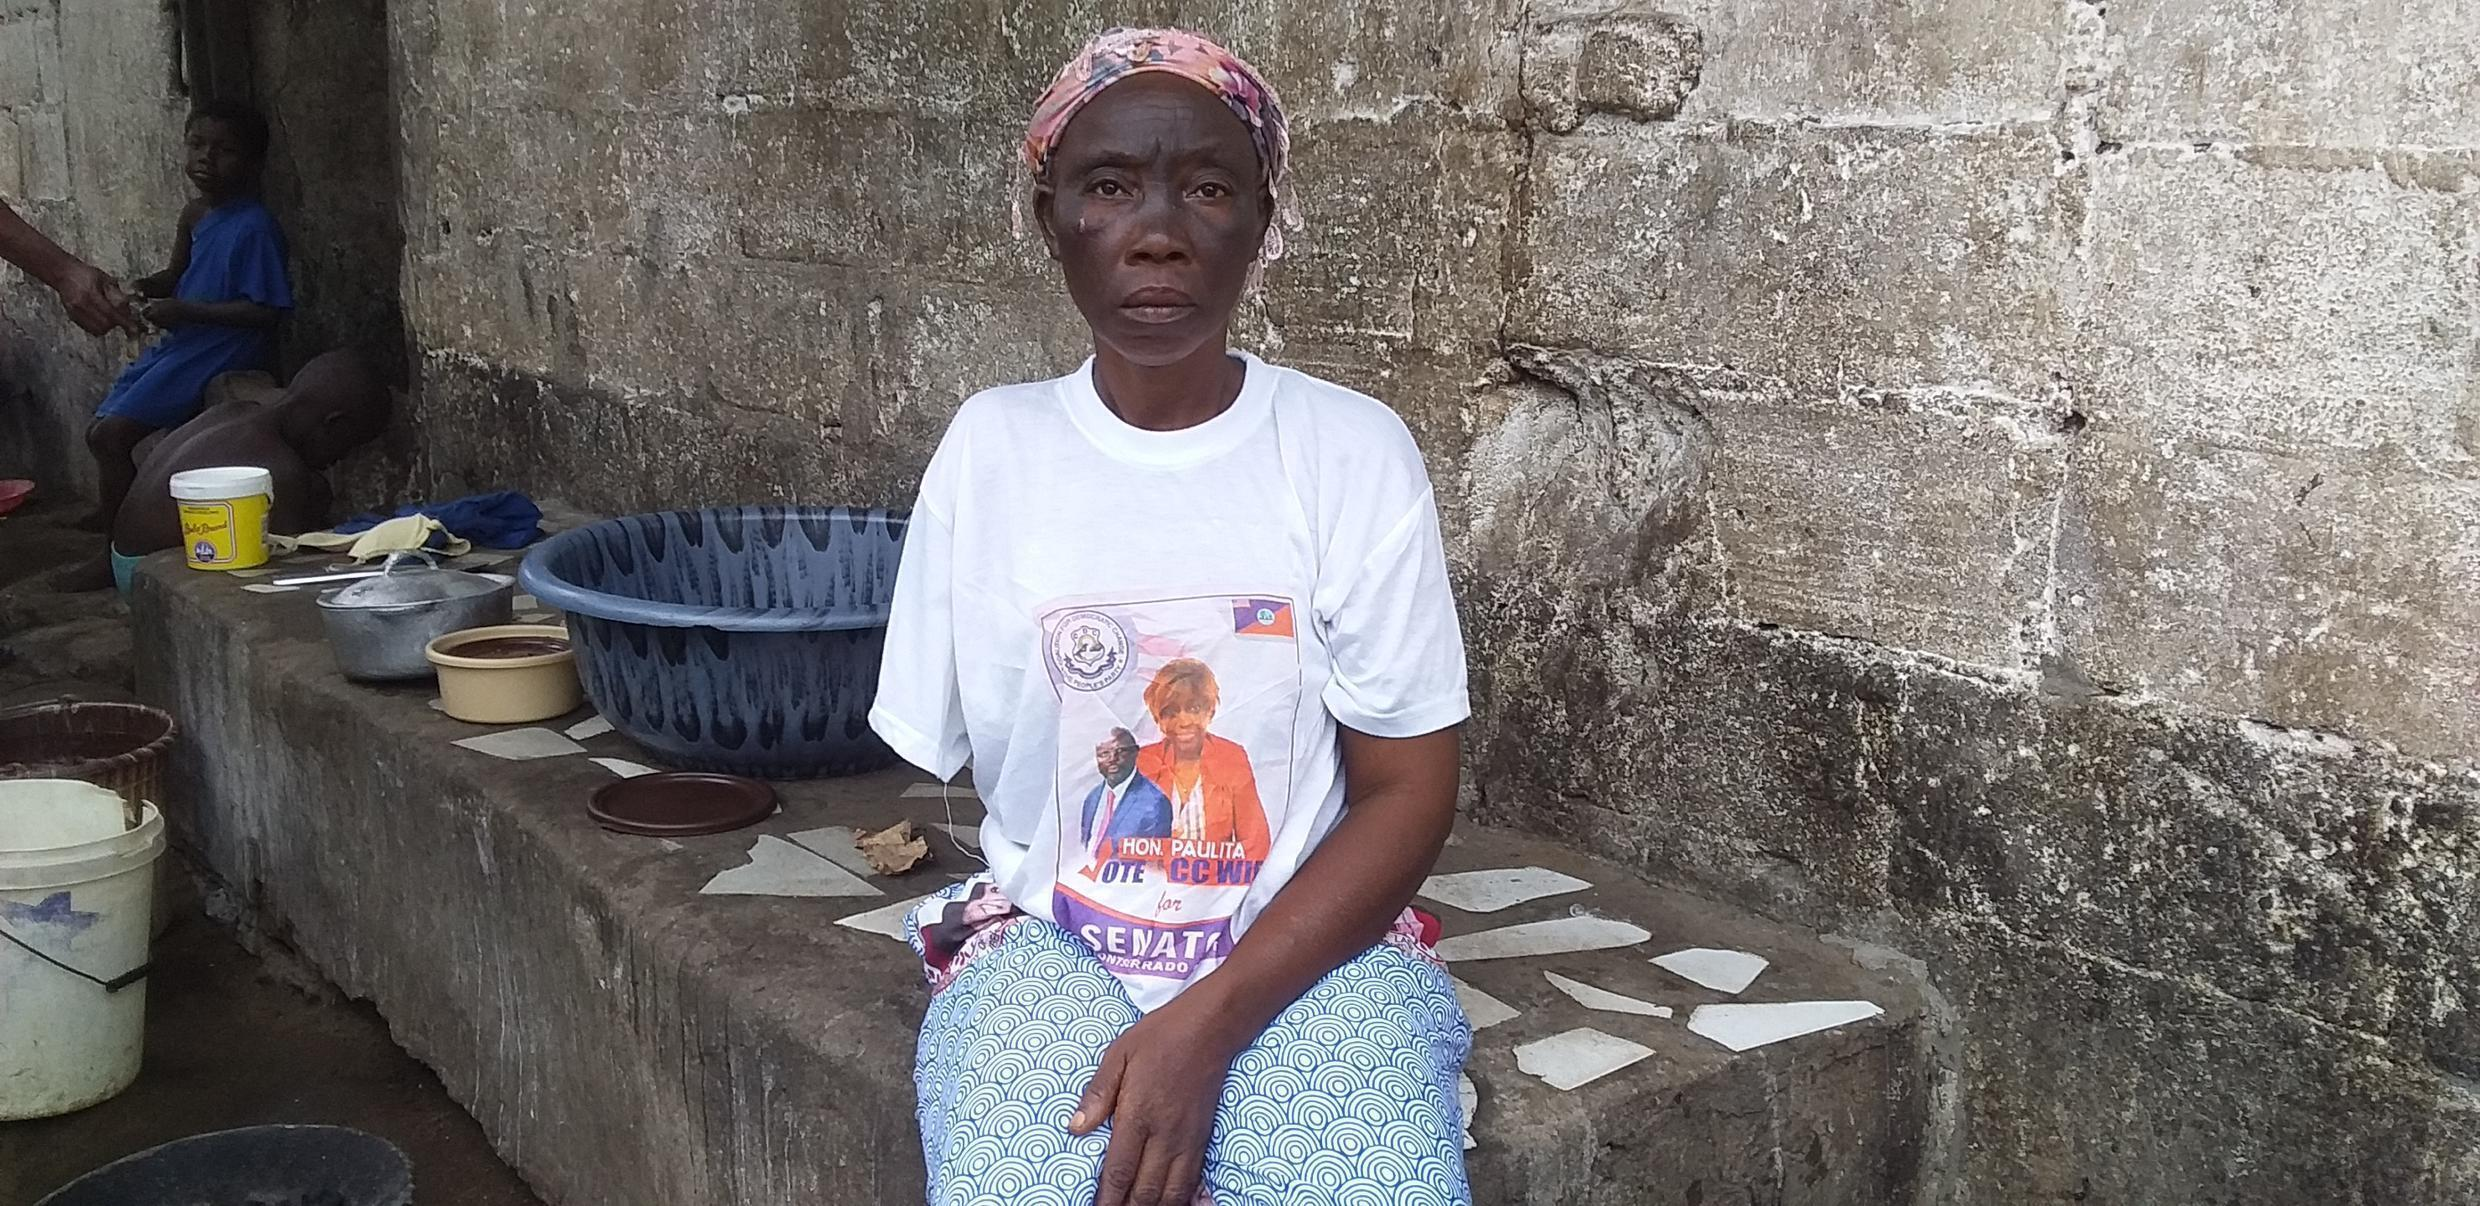 Madam Emmon Korlu, a victim of torture during Liberia's civil war and the rule of Charles Taylor